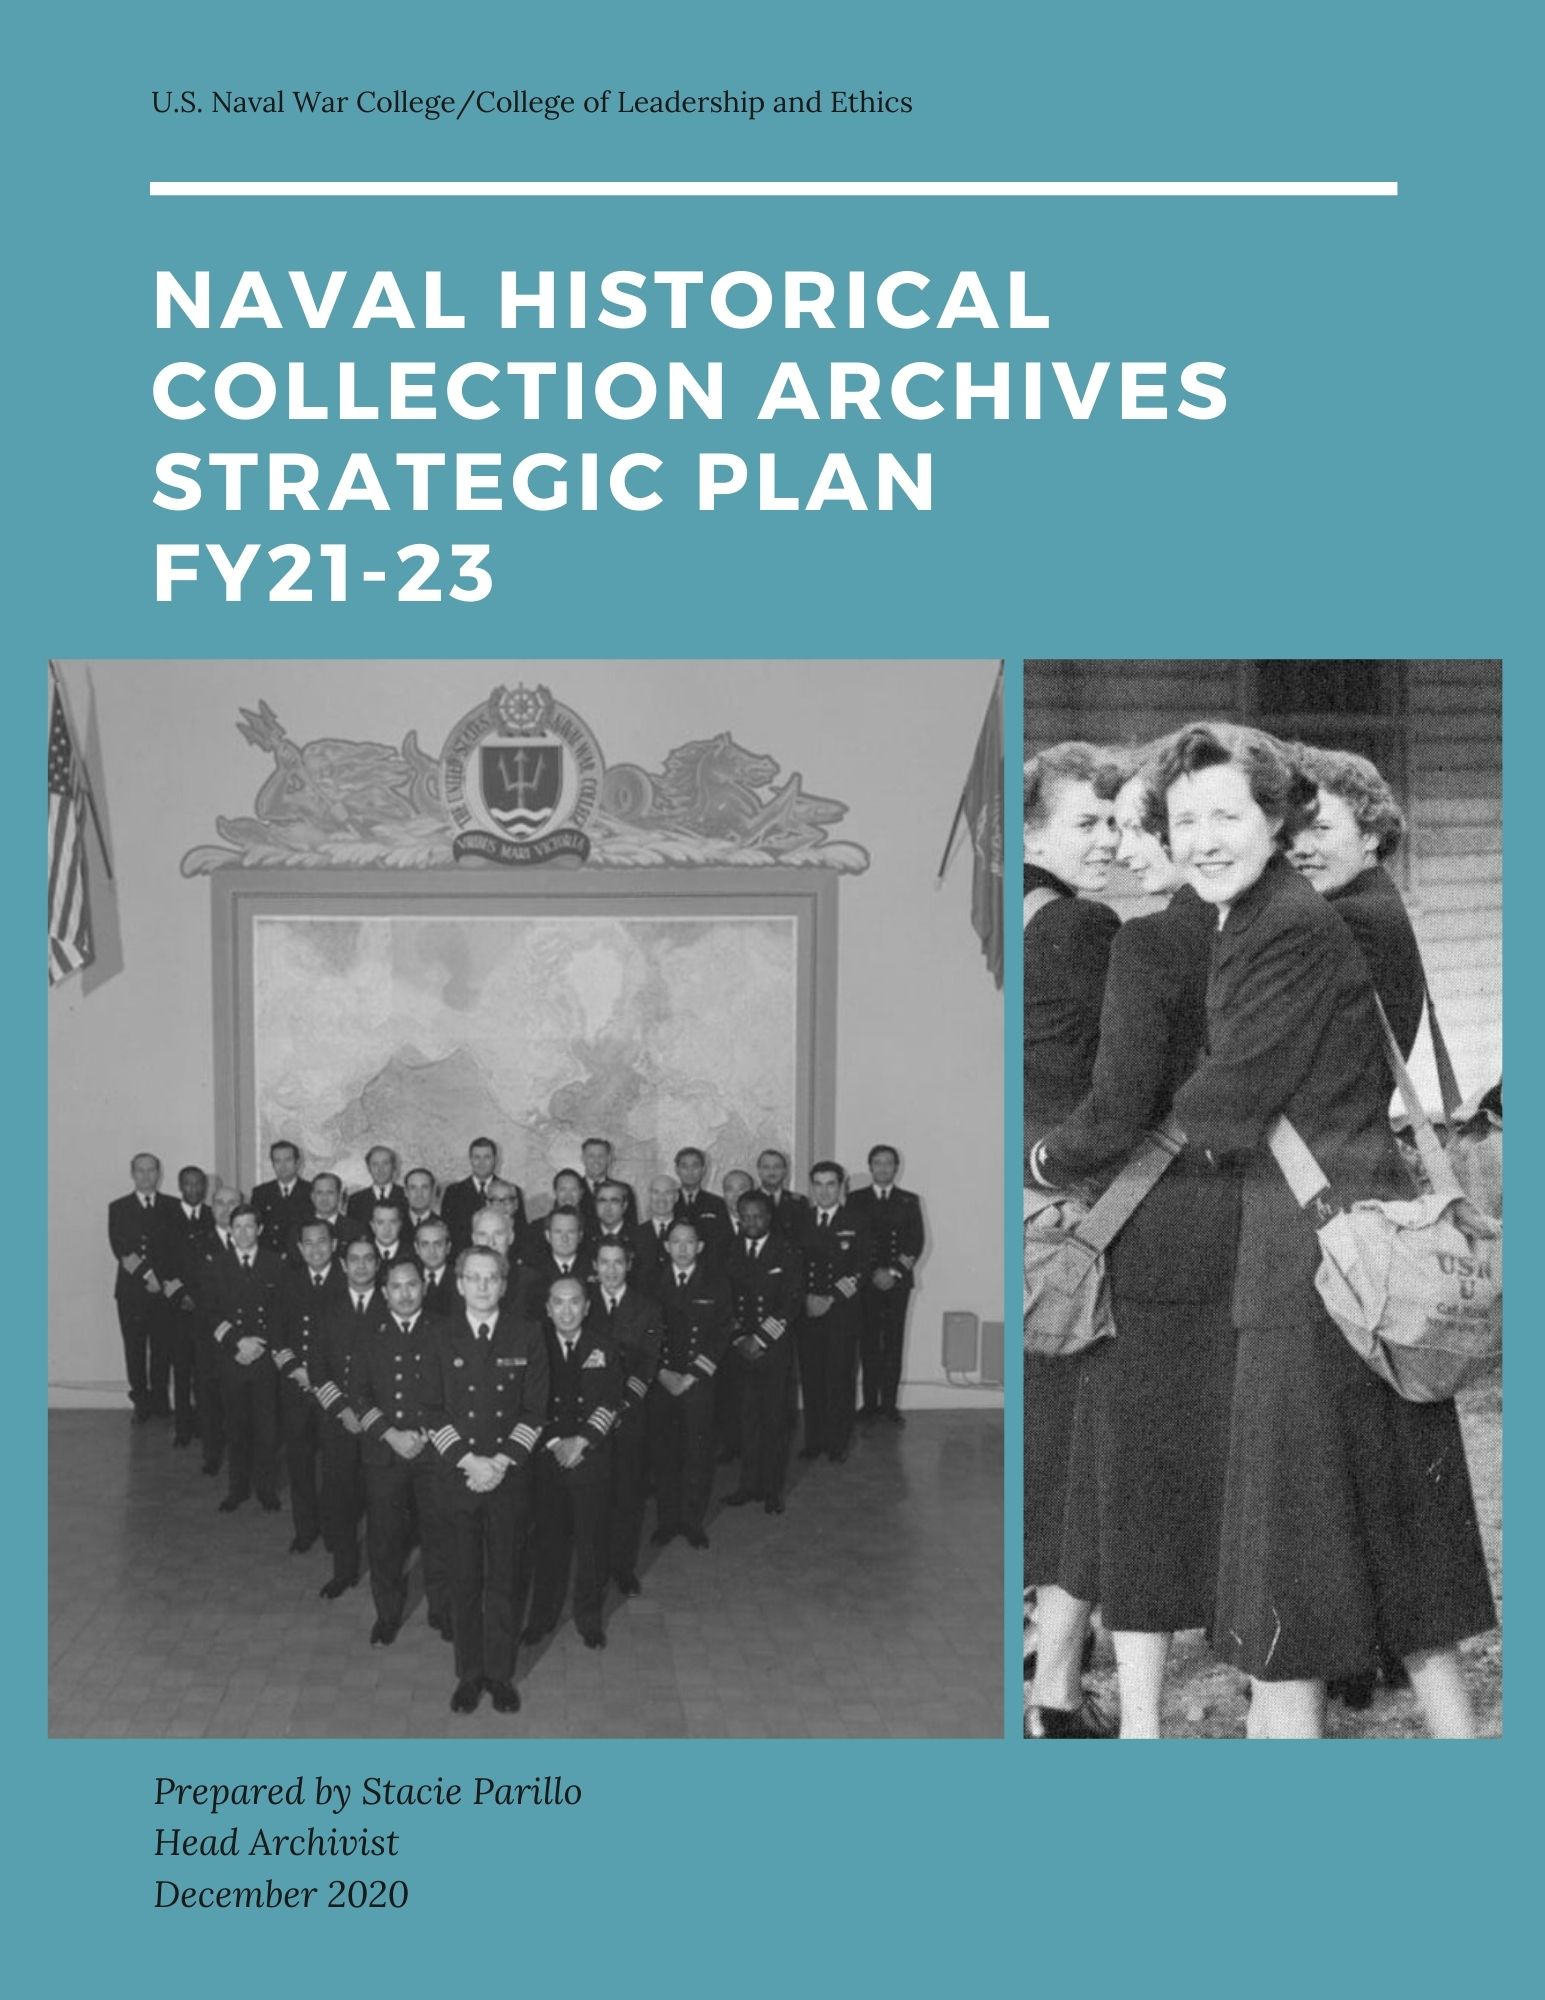 U.S. Naval Historical Collection Archives Strategic Plan FY 21-23